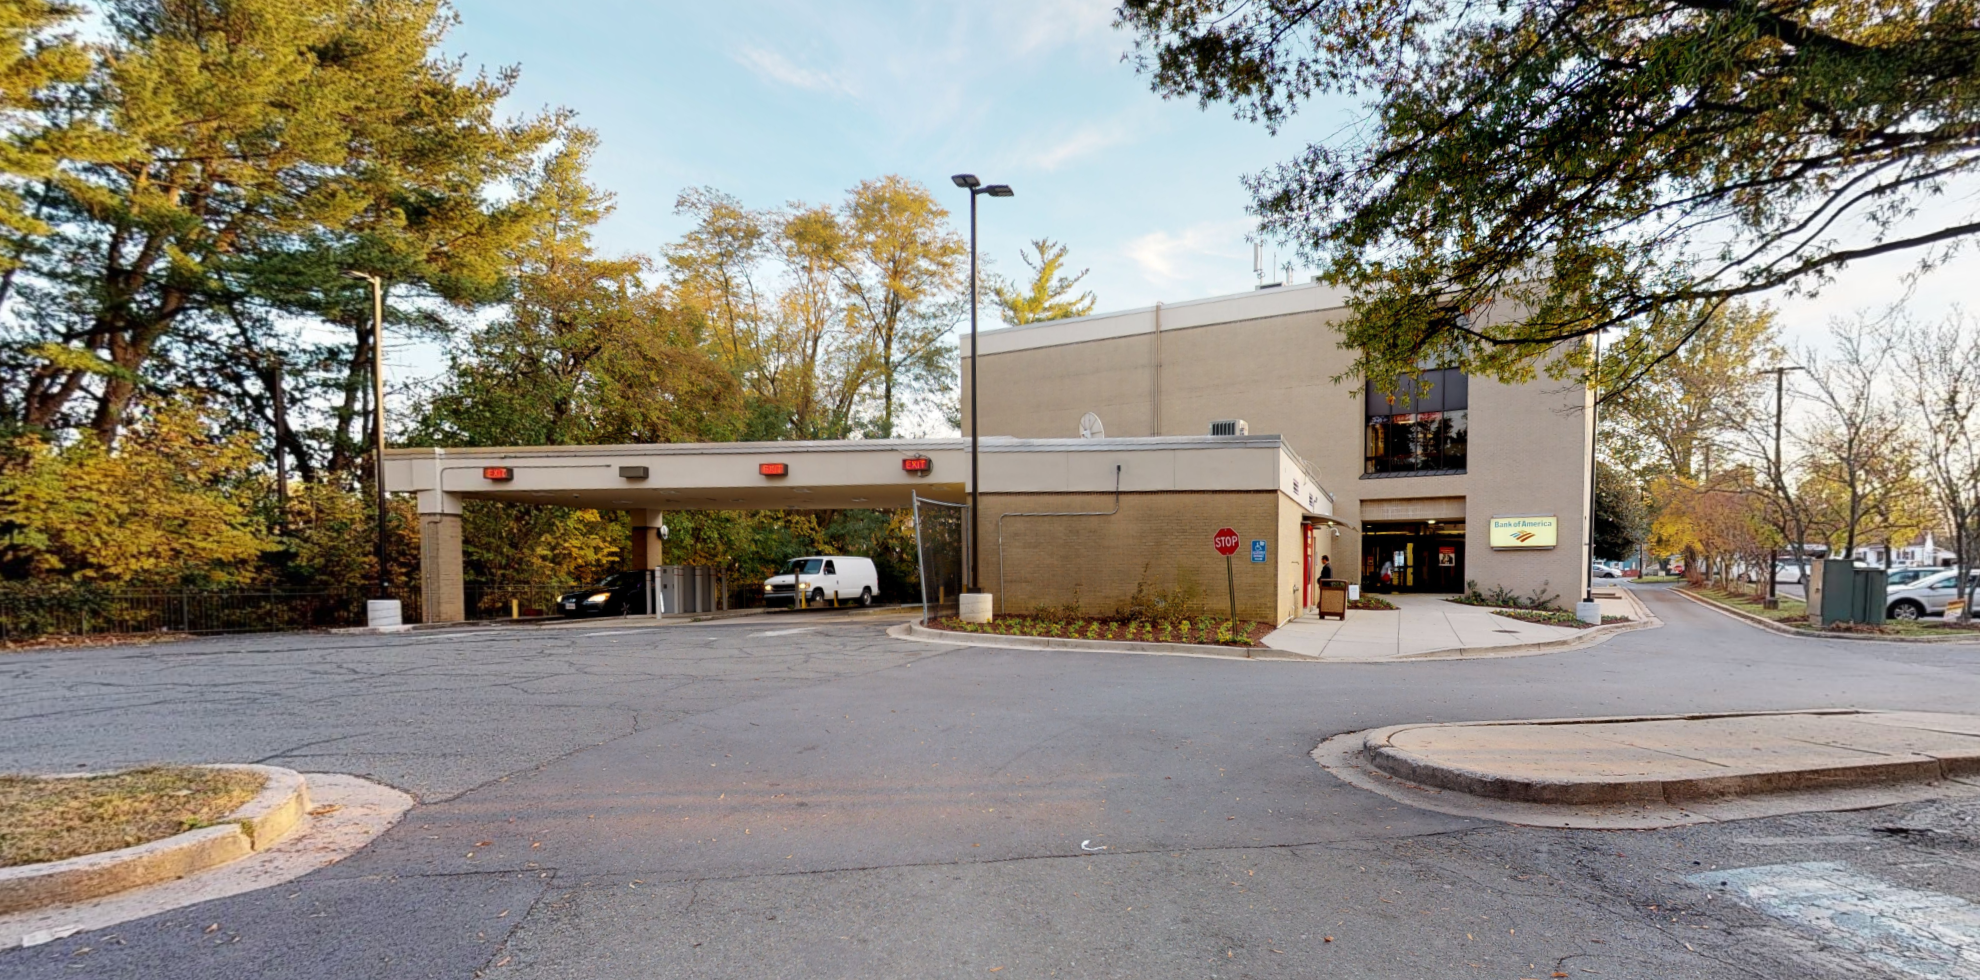 Bank of America financial center with drive-thru ATM   12125 Veirs Mill Rd, Silver Spring, MD 20906